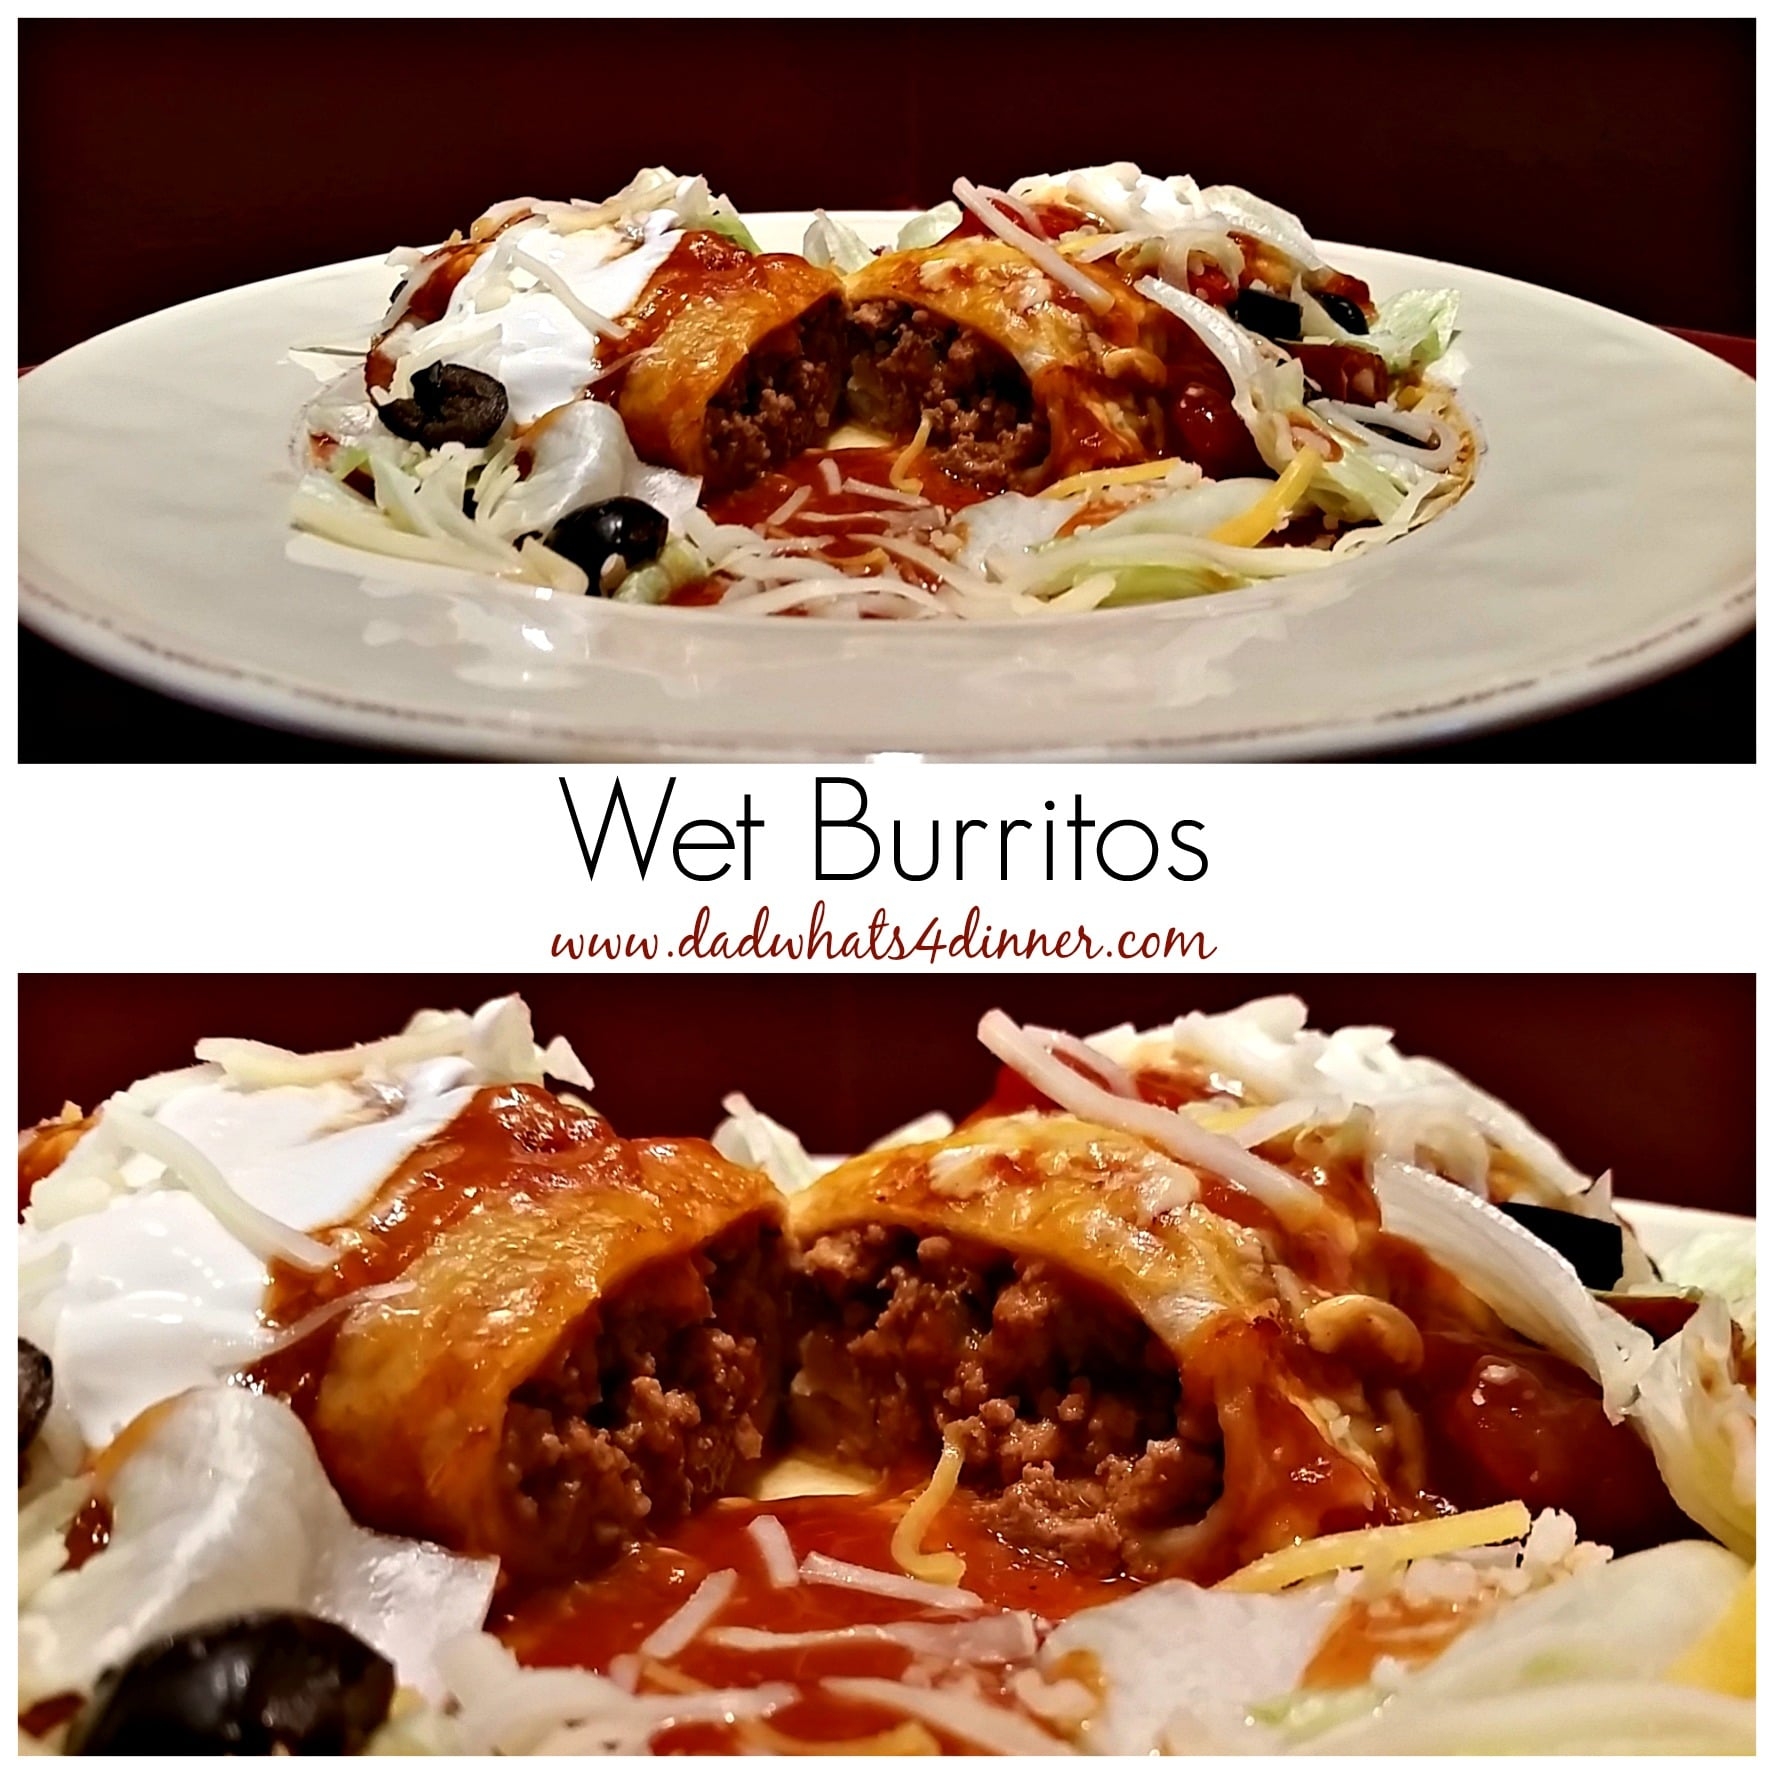 Wet Burritos |http://dadwhats4dinner.com